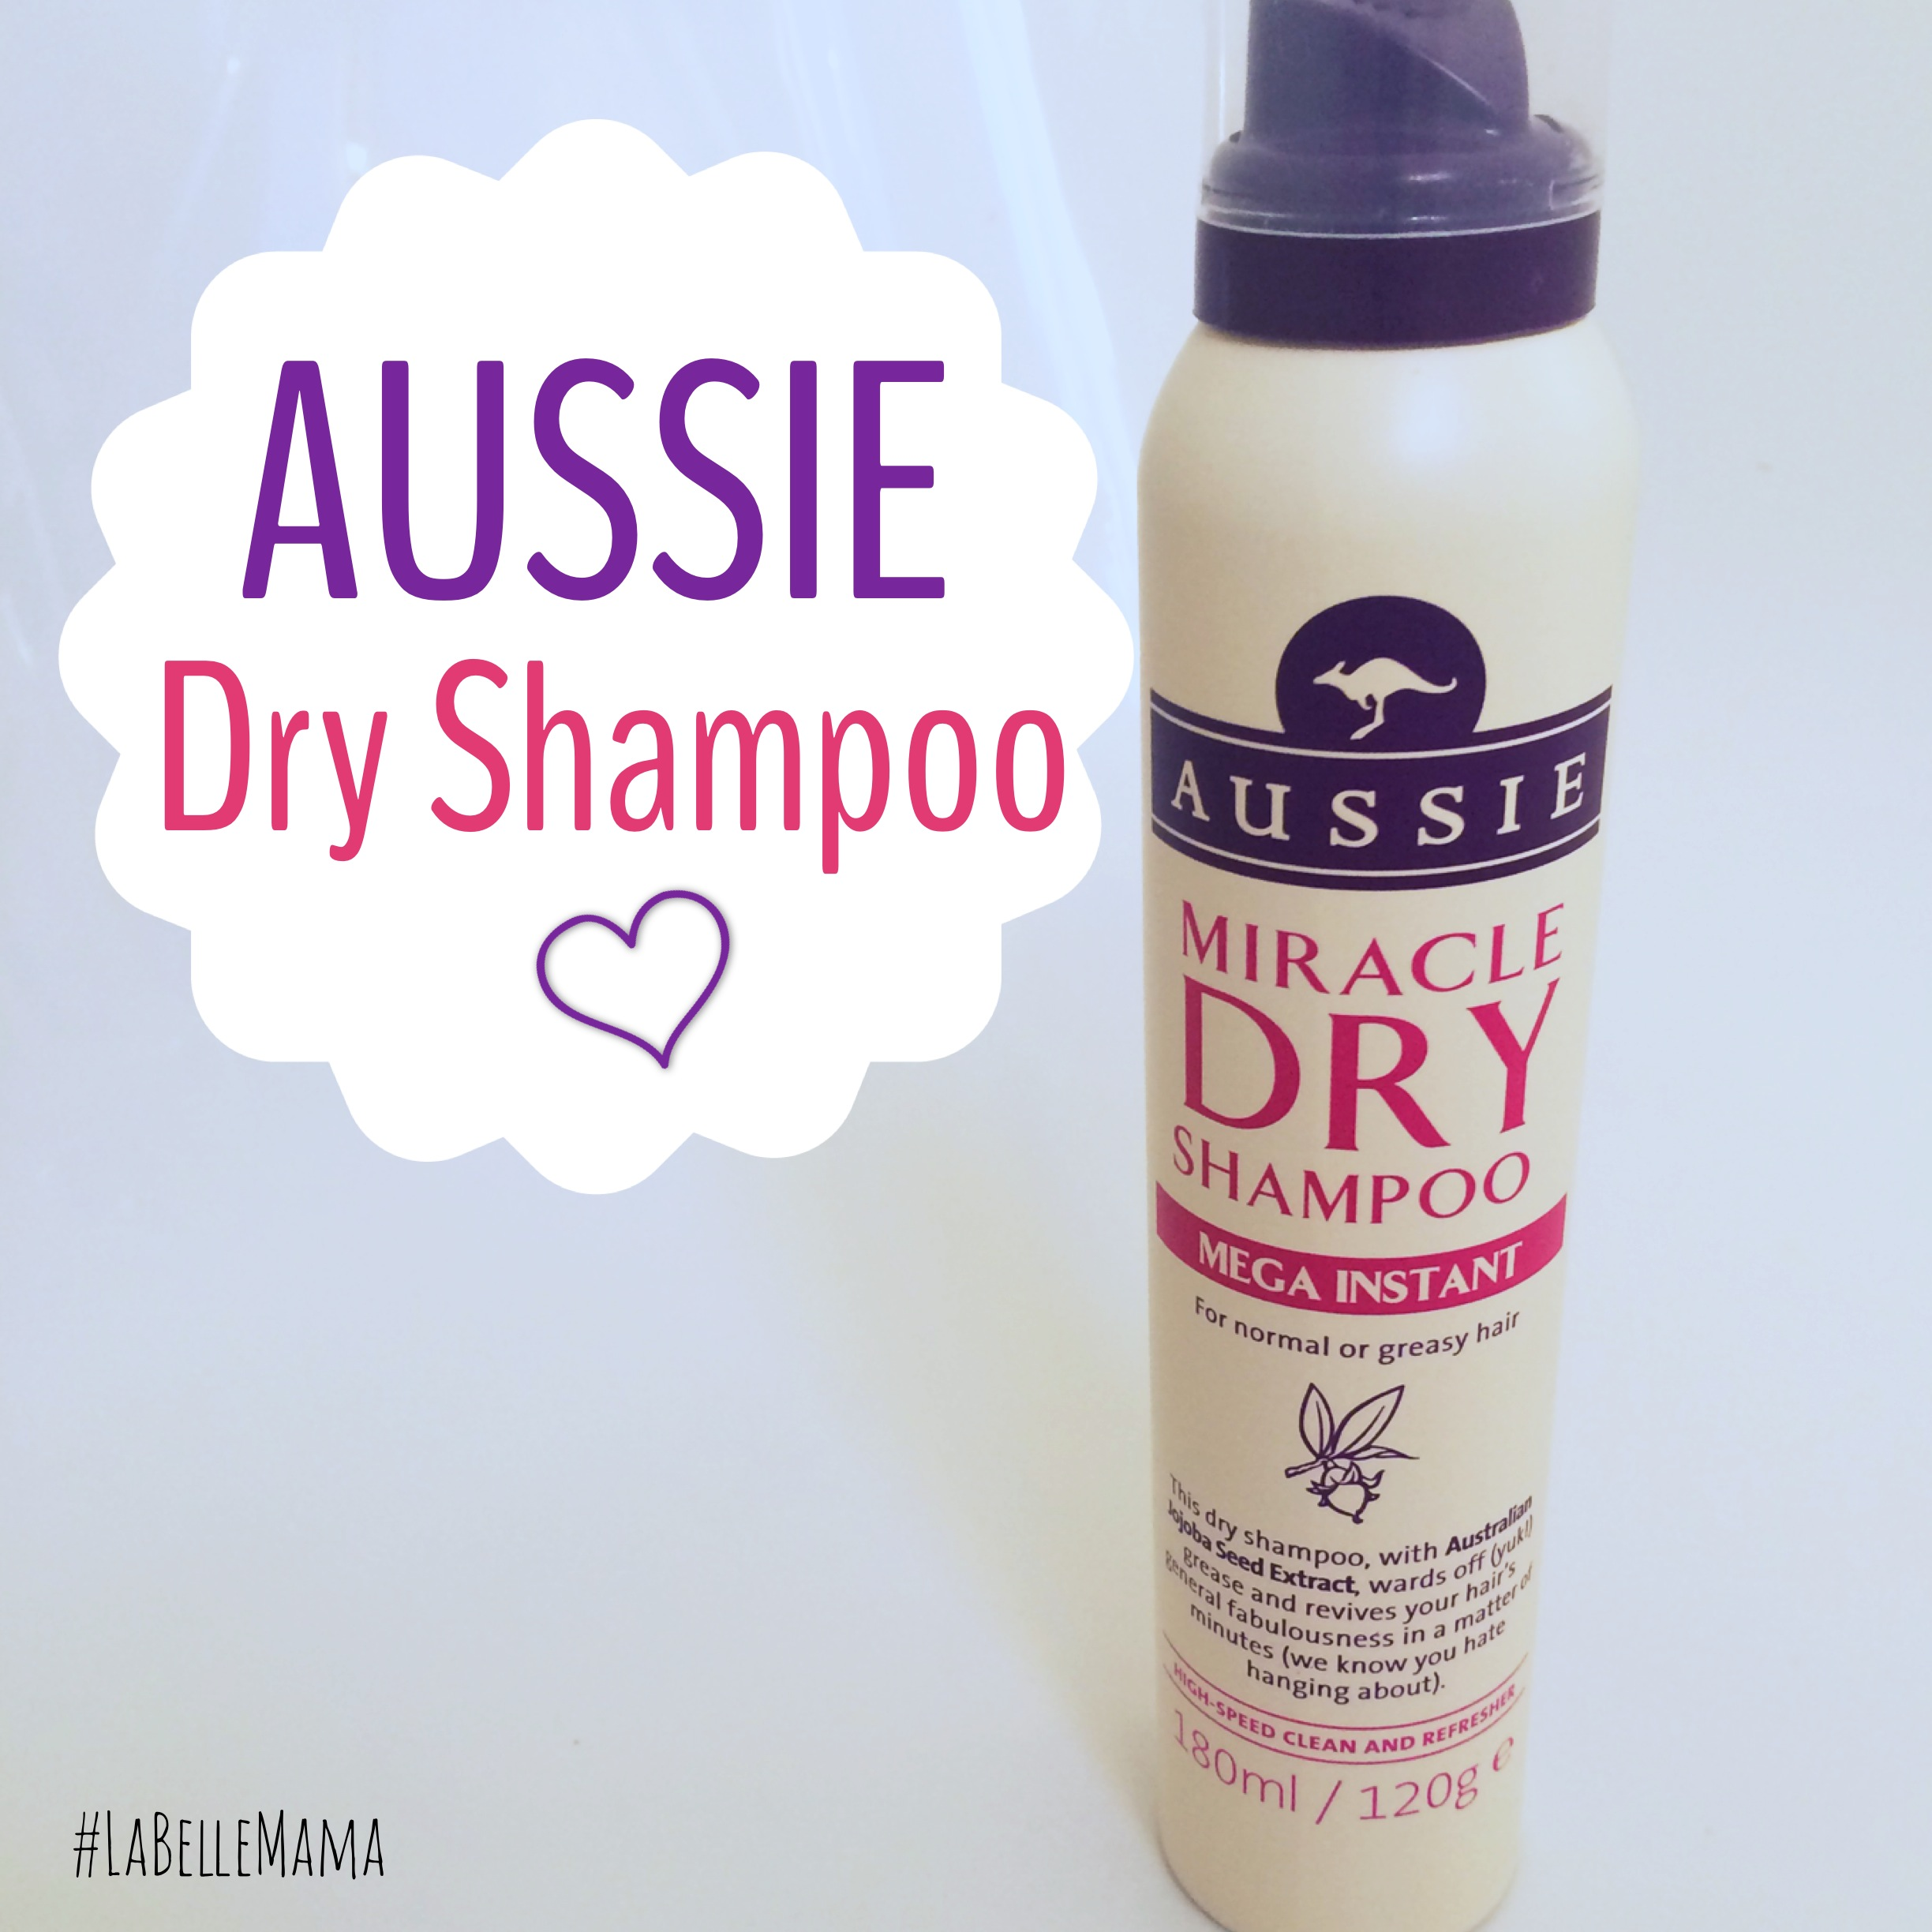 What Food Can You Use For Dry Shampoo